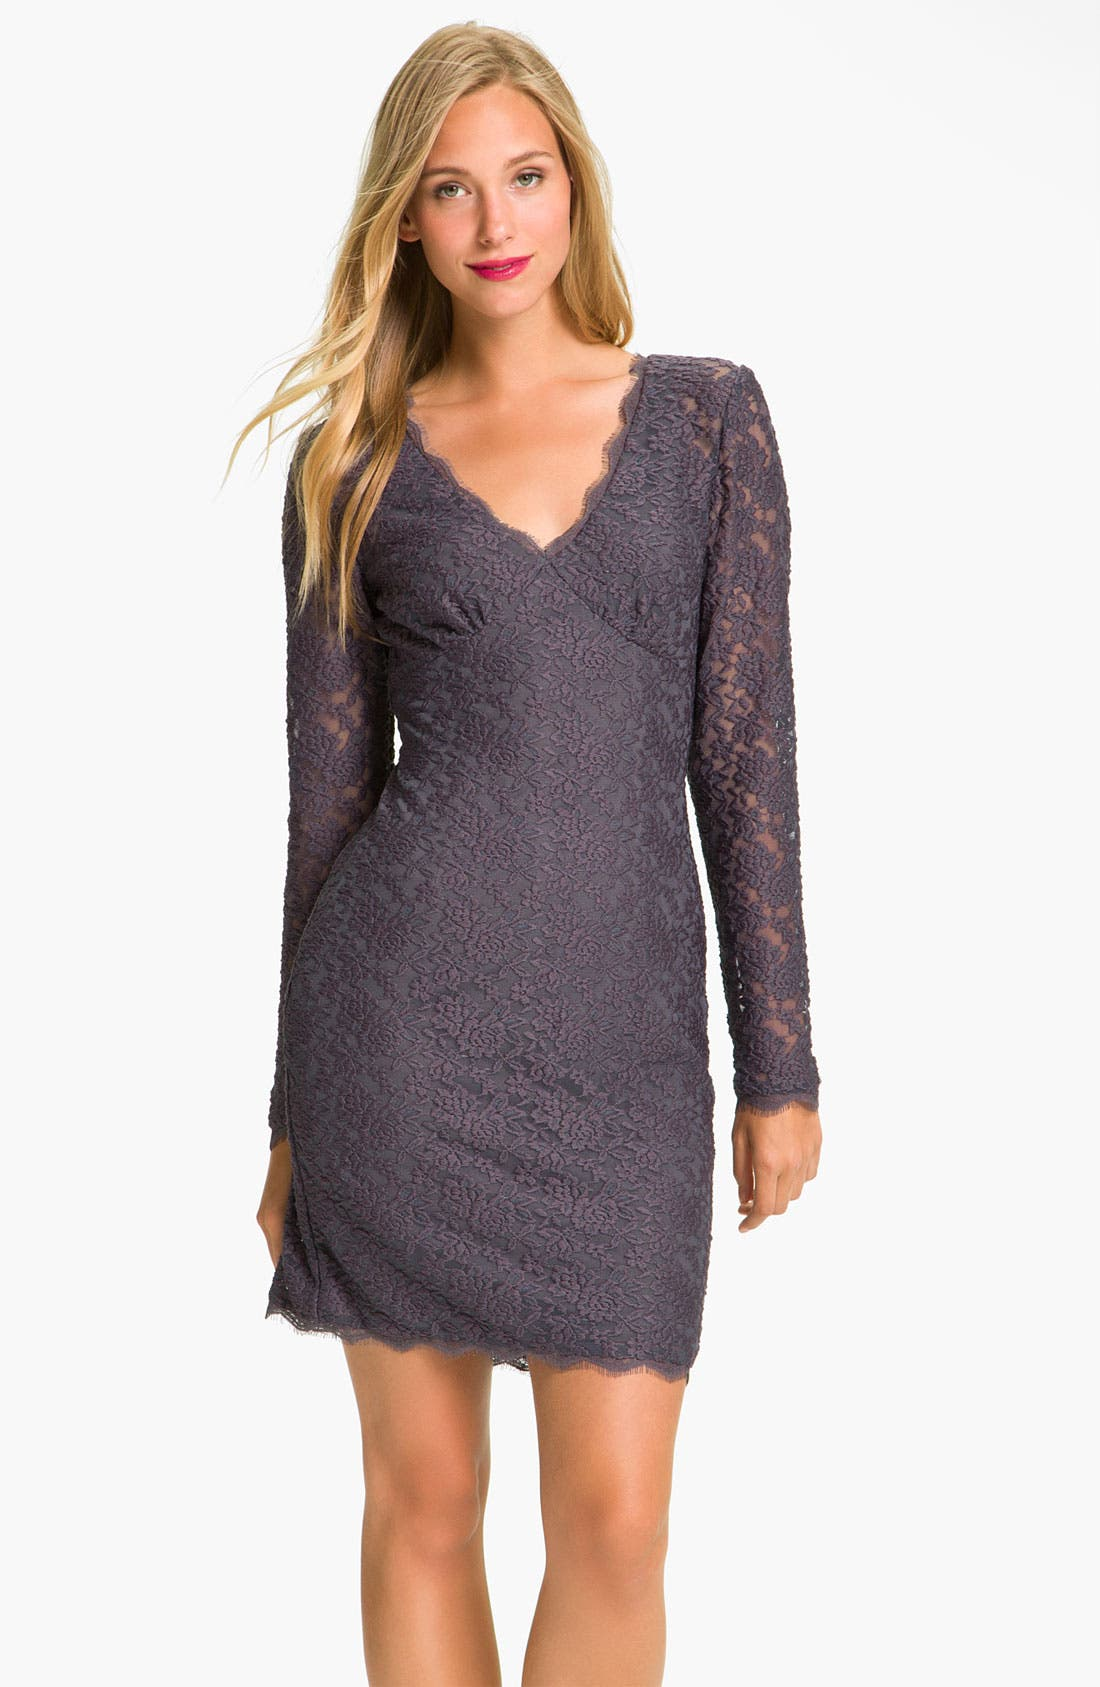 Alternate Image 1 Selected - Adrianna Papell Lace Overlay Sheath Dress (Petite)